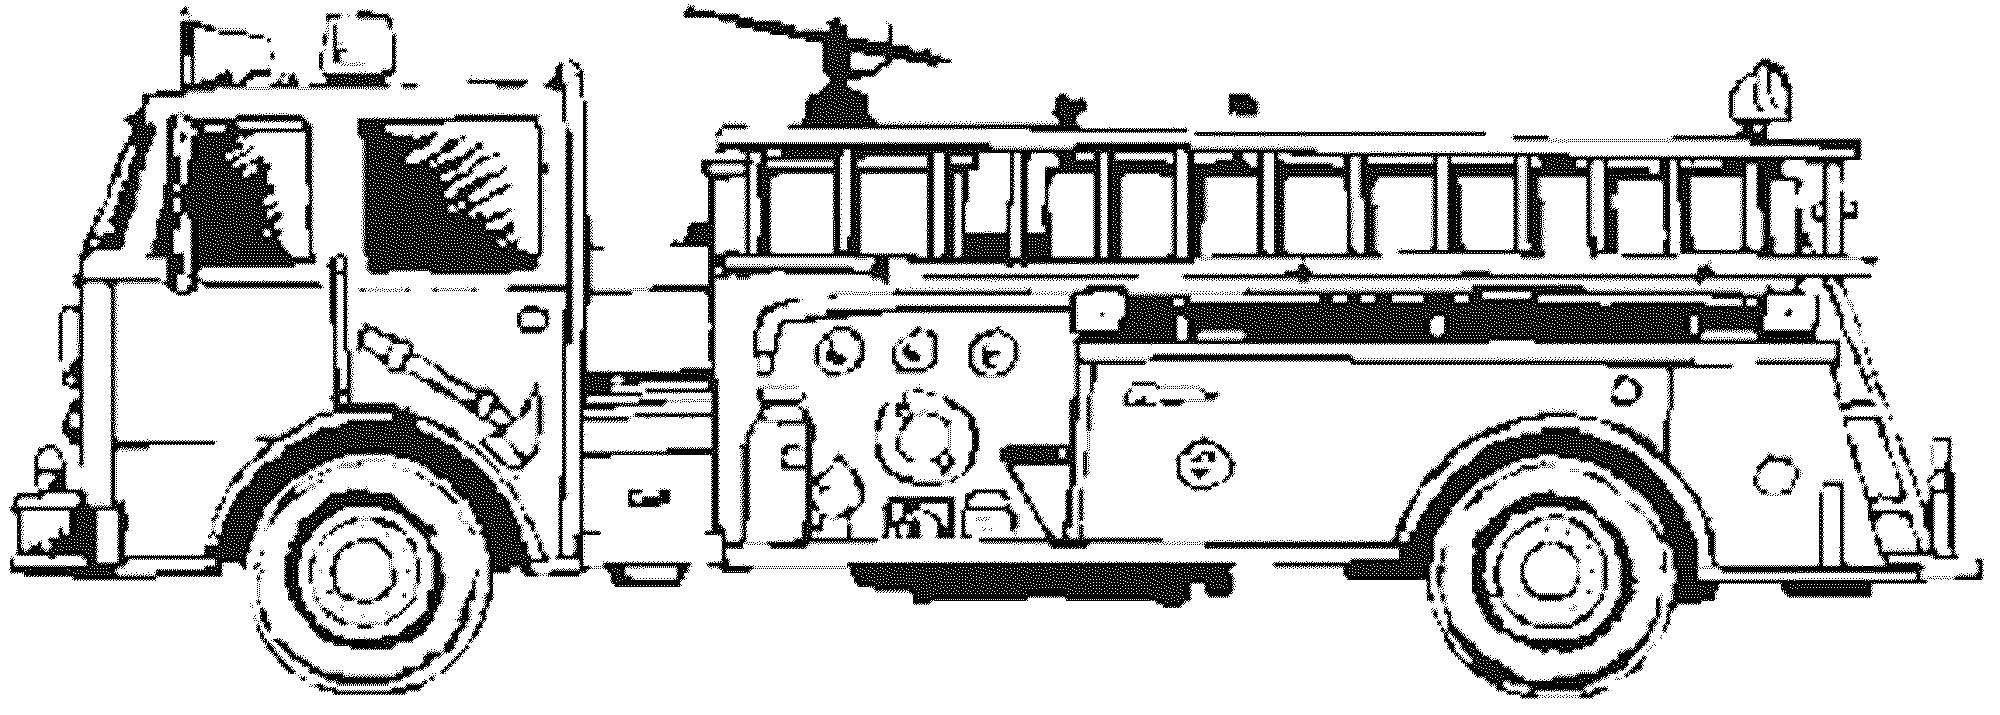 Superb Dump Truck Coloring Pages Printable with Semi Inside to Print ...